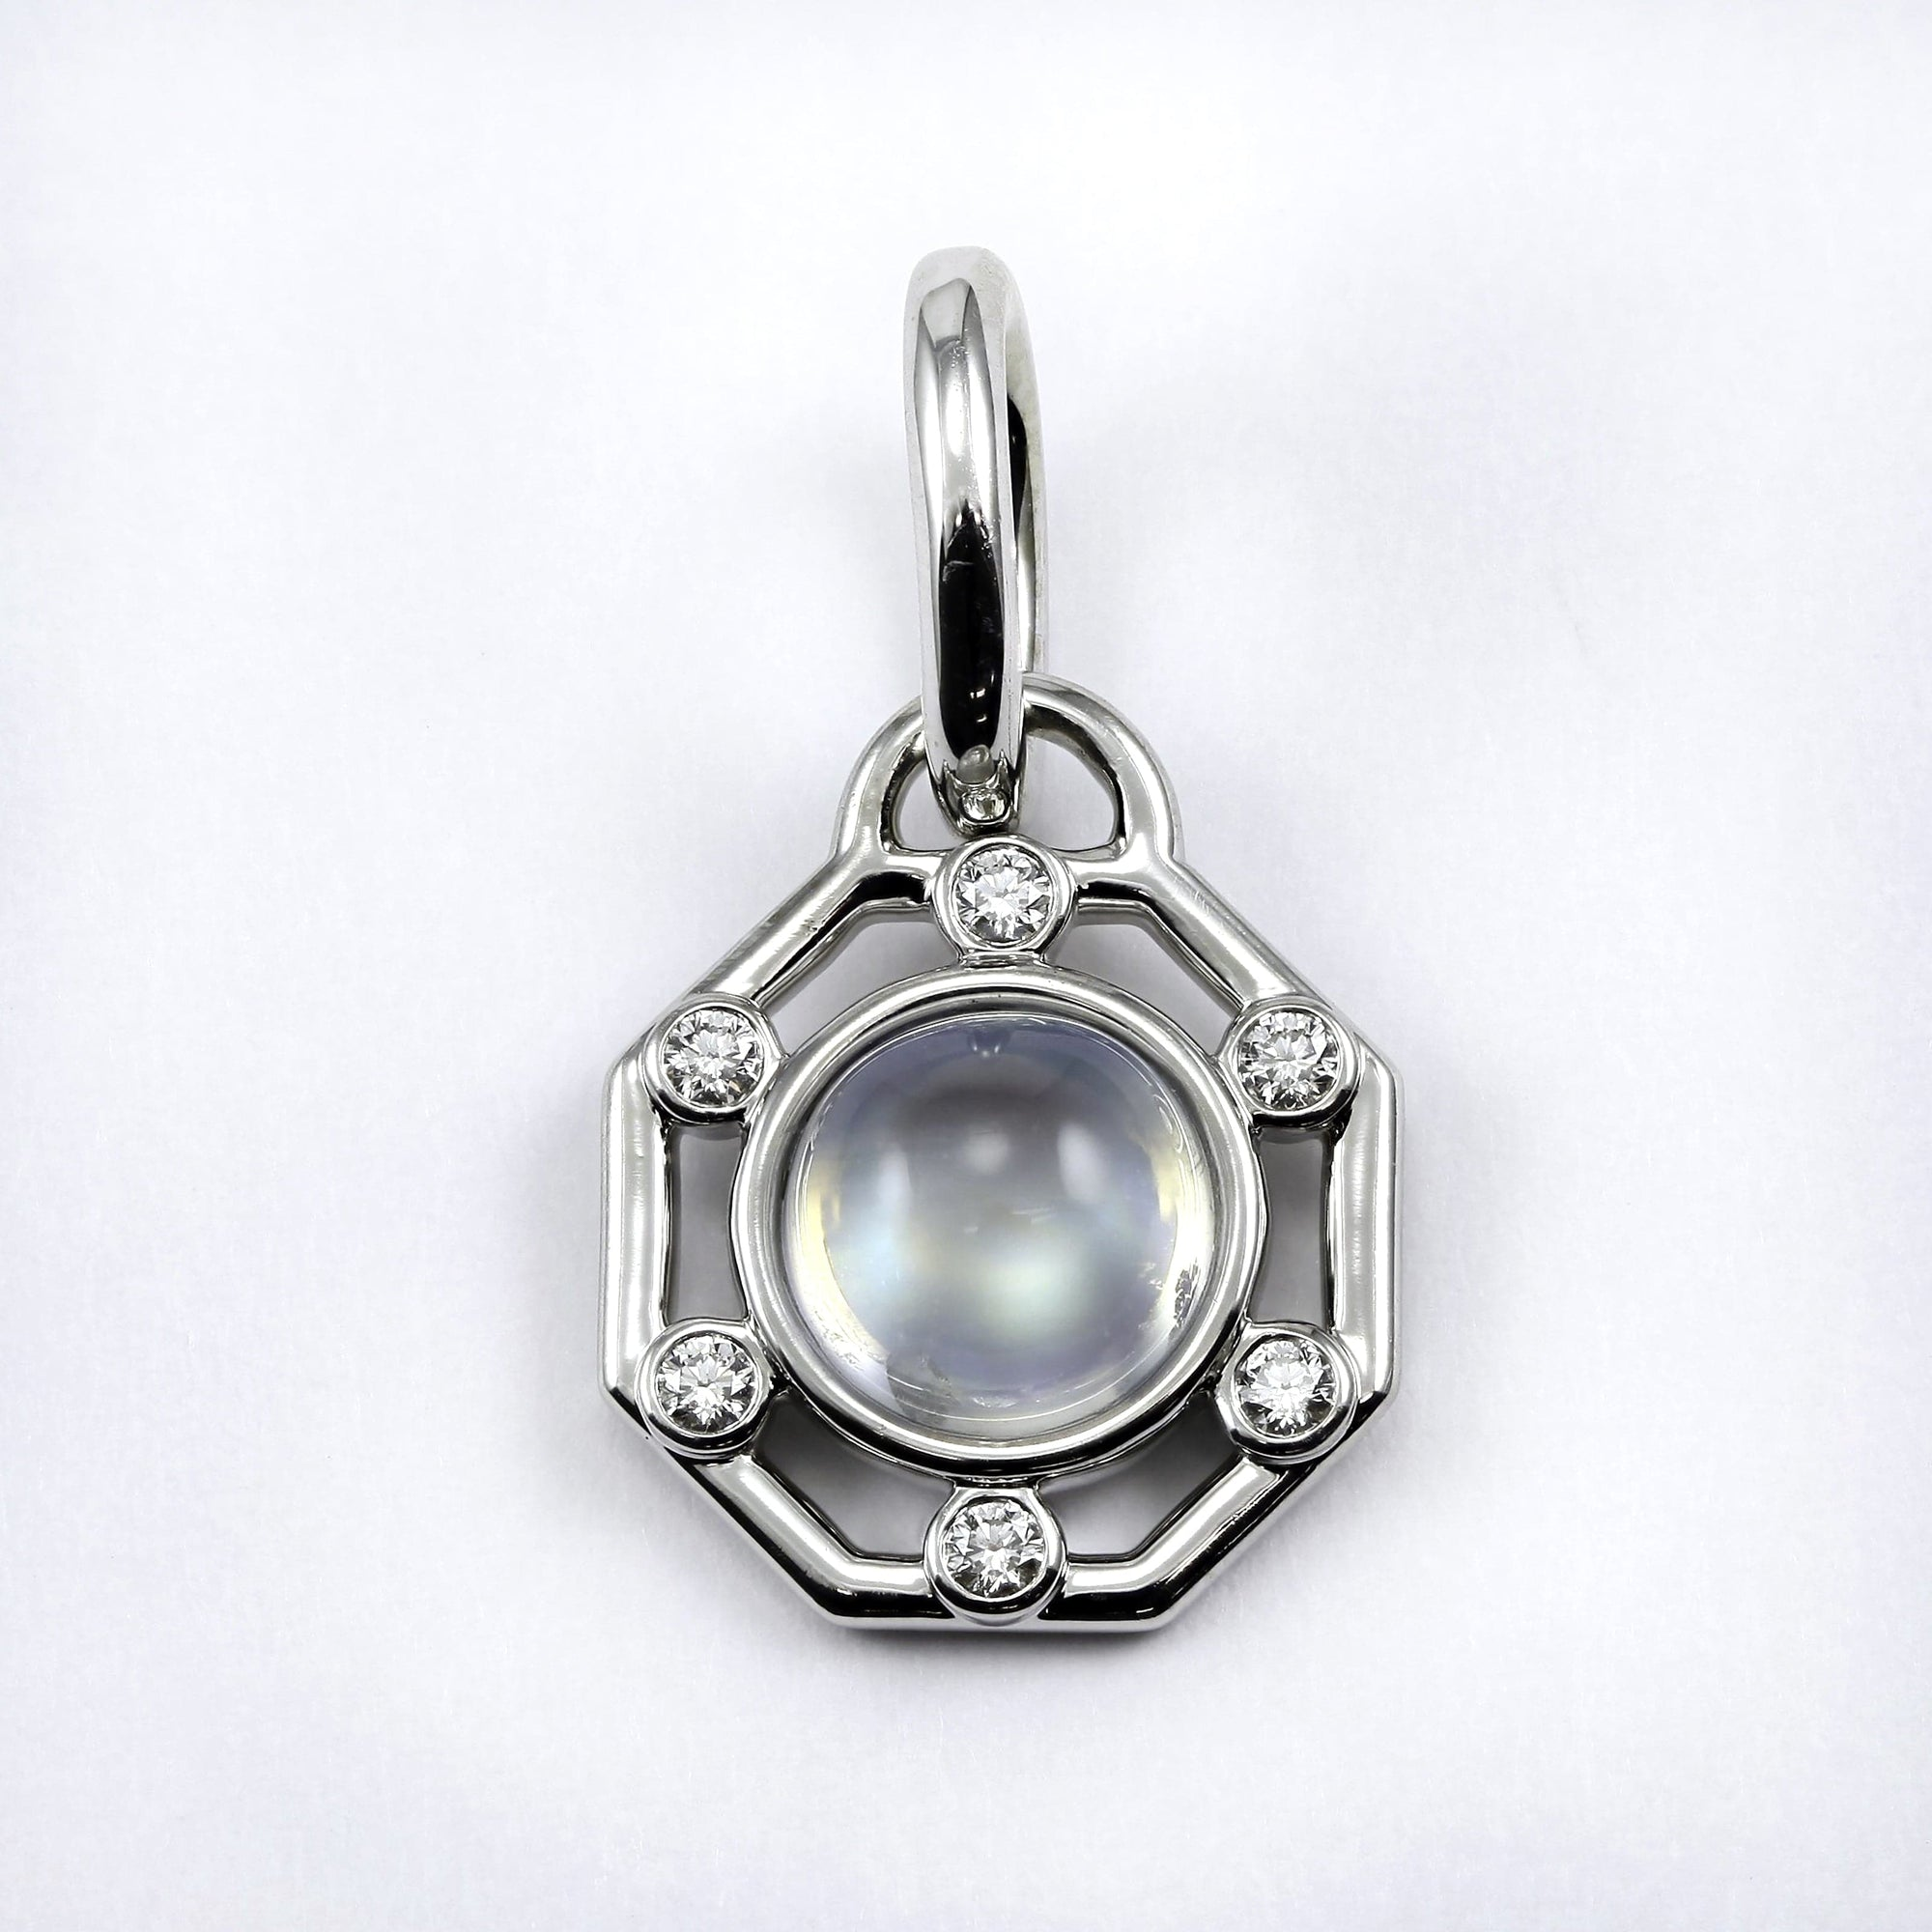 Nina 14K White Gold pendant with round cabochon cut moonstone set